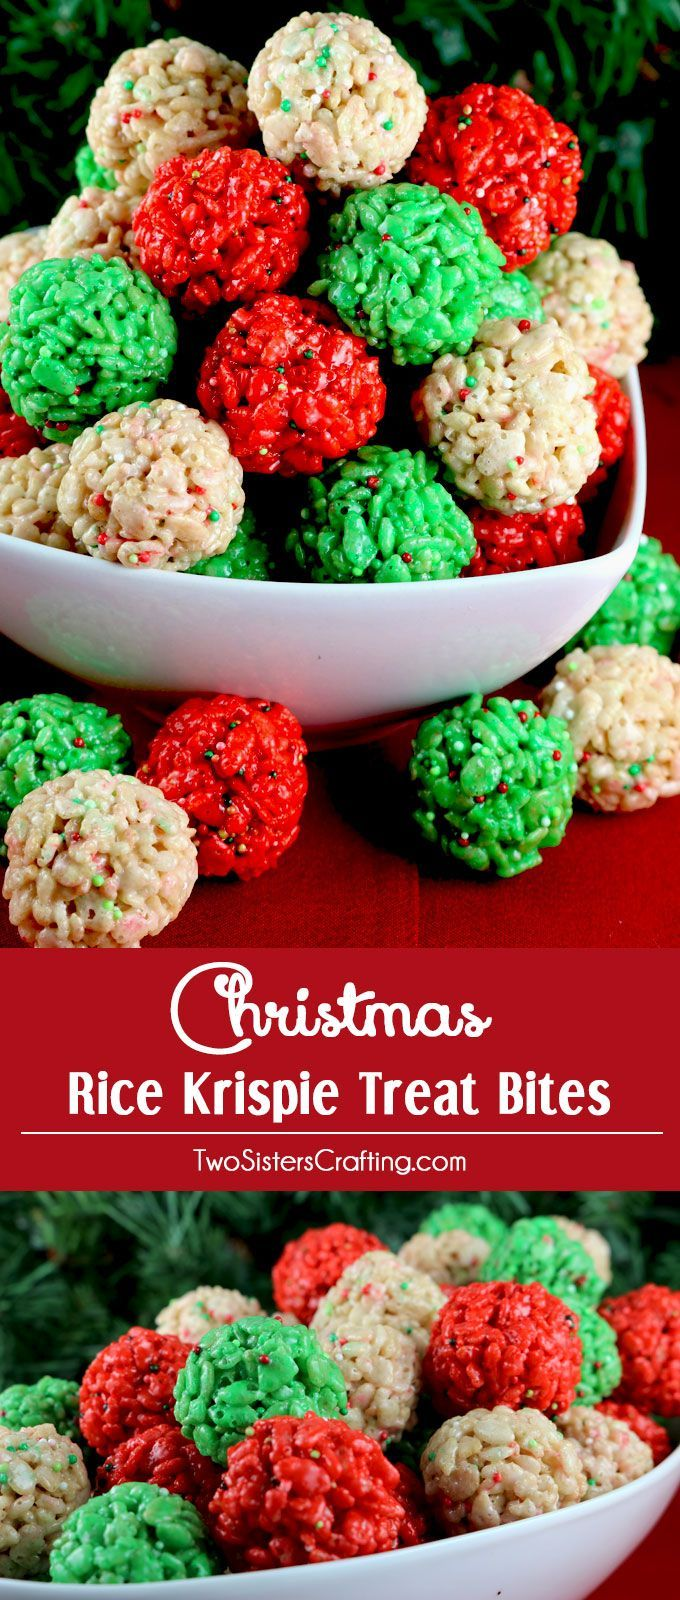 Christmas Colored Rice Crispy Treats With Krispie Treat Bites Pinterest